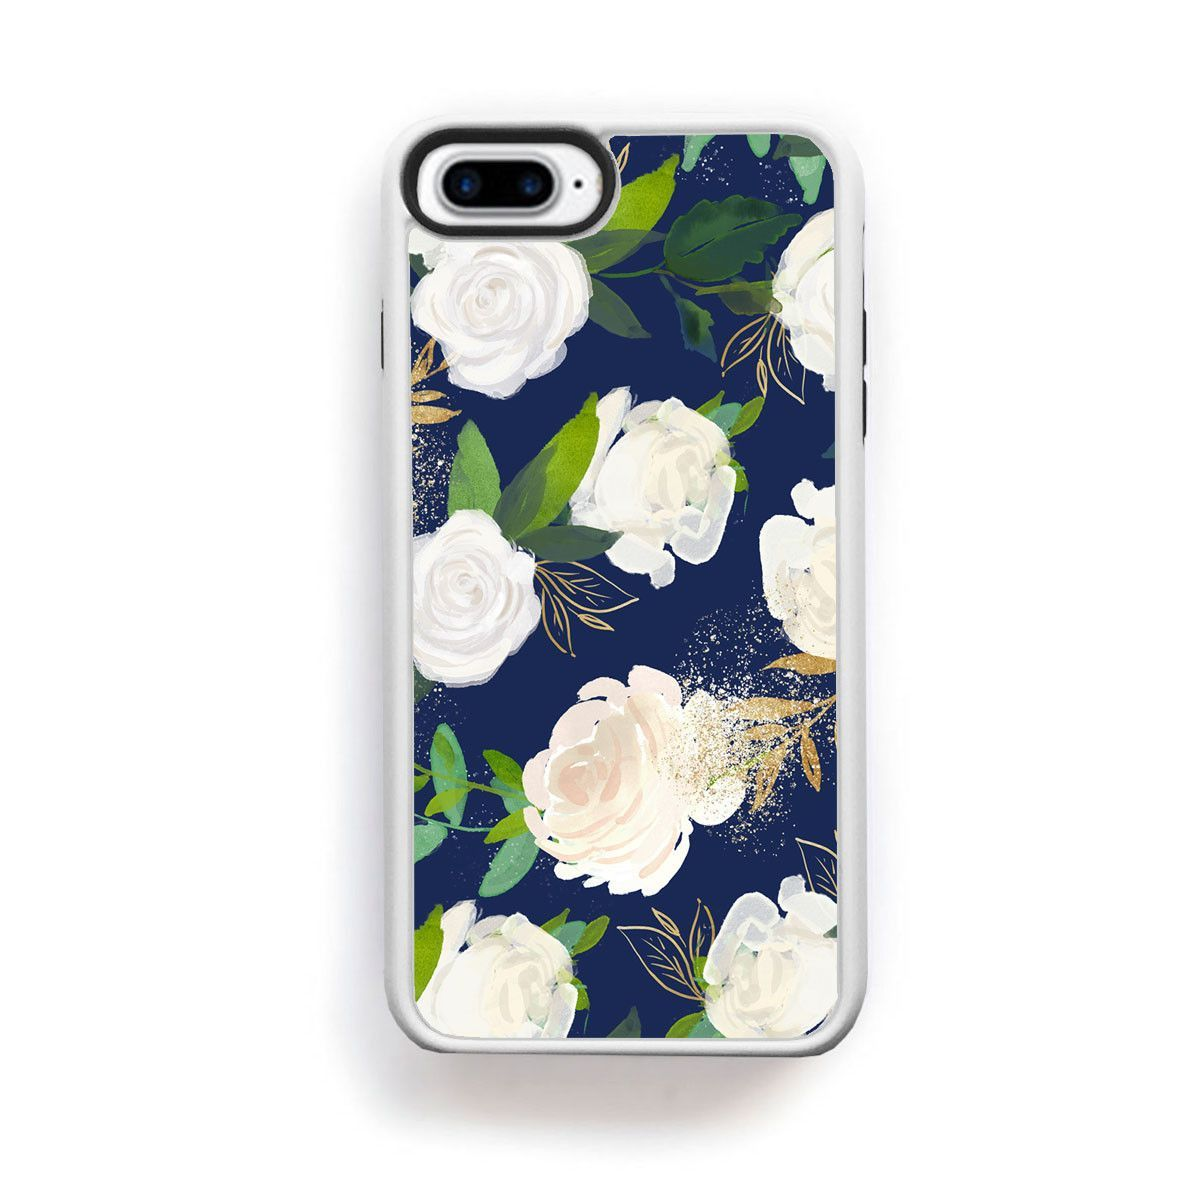 White rose large buds with green gold leaves on navy blue for iPhone 7 Plus